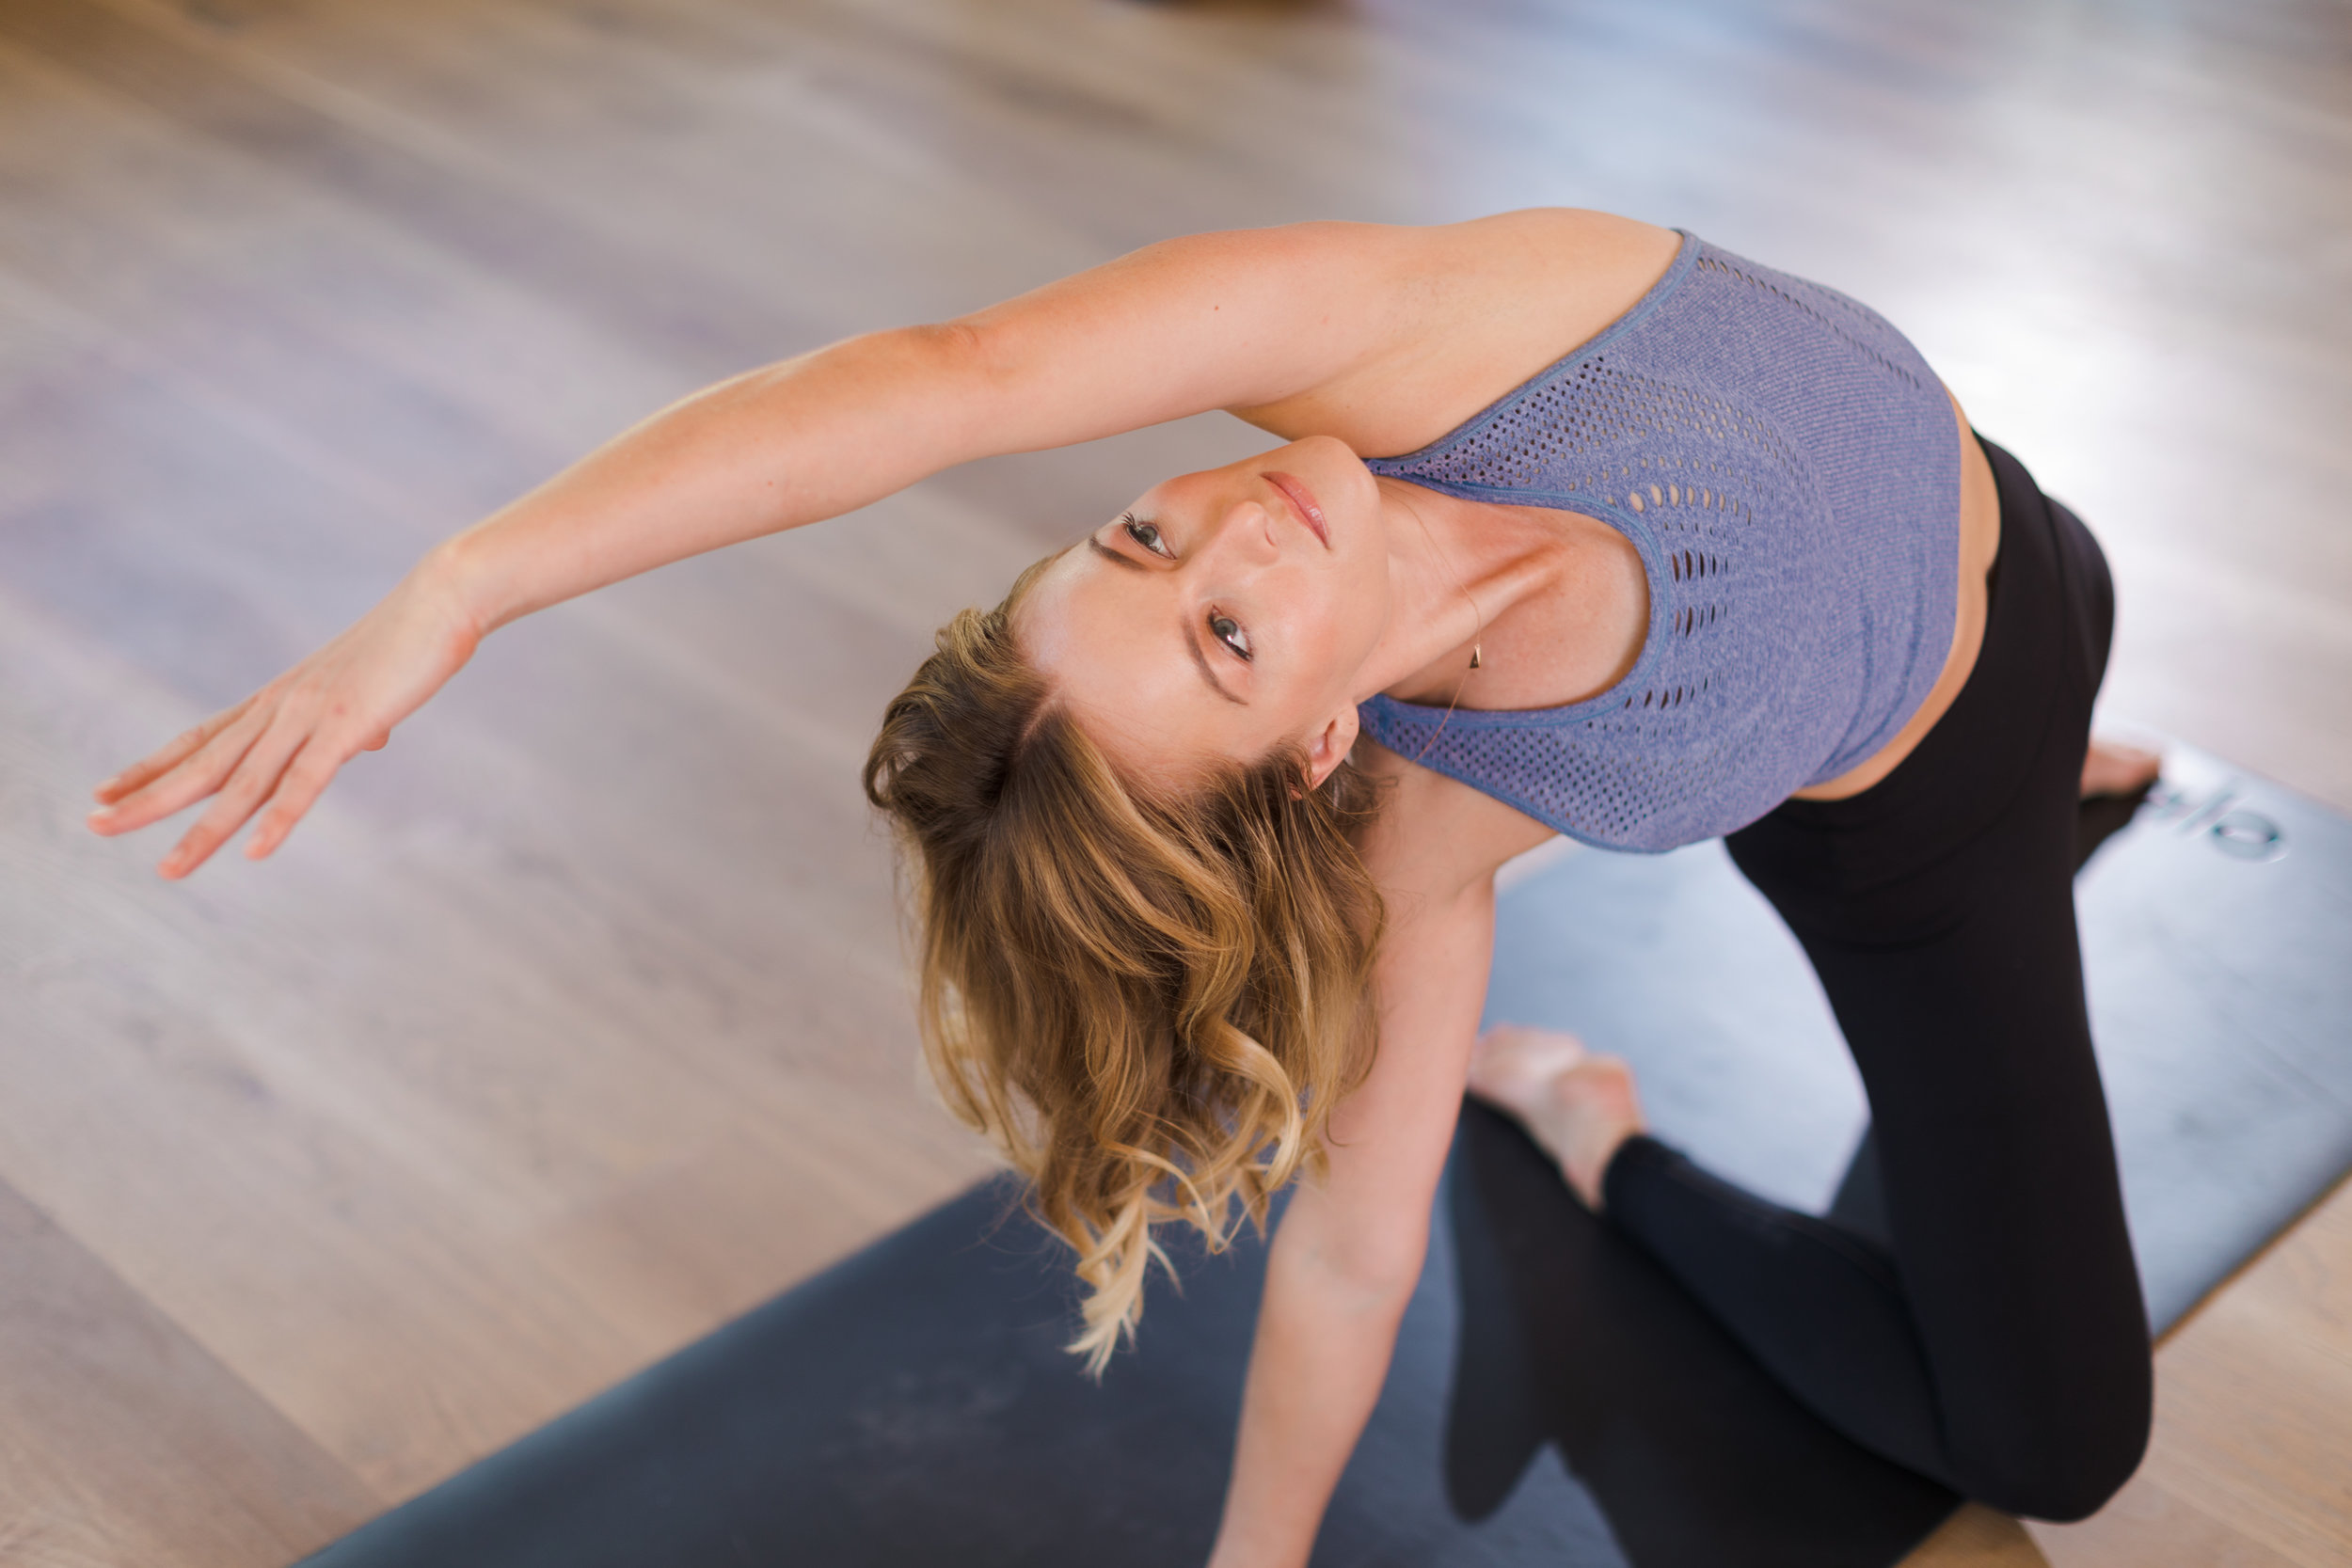 DUALITY - Duality explores the yin and the yang, the masculine and feminine elements of our yoga practice. This 30-minute class plays to both energies by combining fiery, flowy components and soft, meditative postures. By bringing awareness to both elements, you will enrich and enliven your experience.